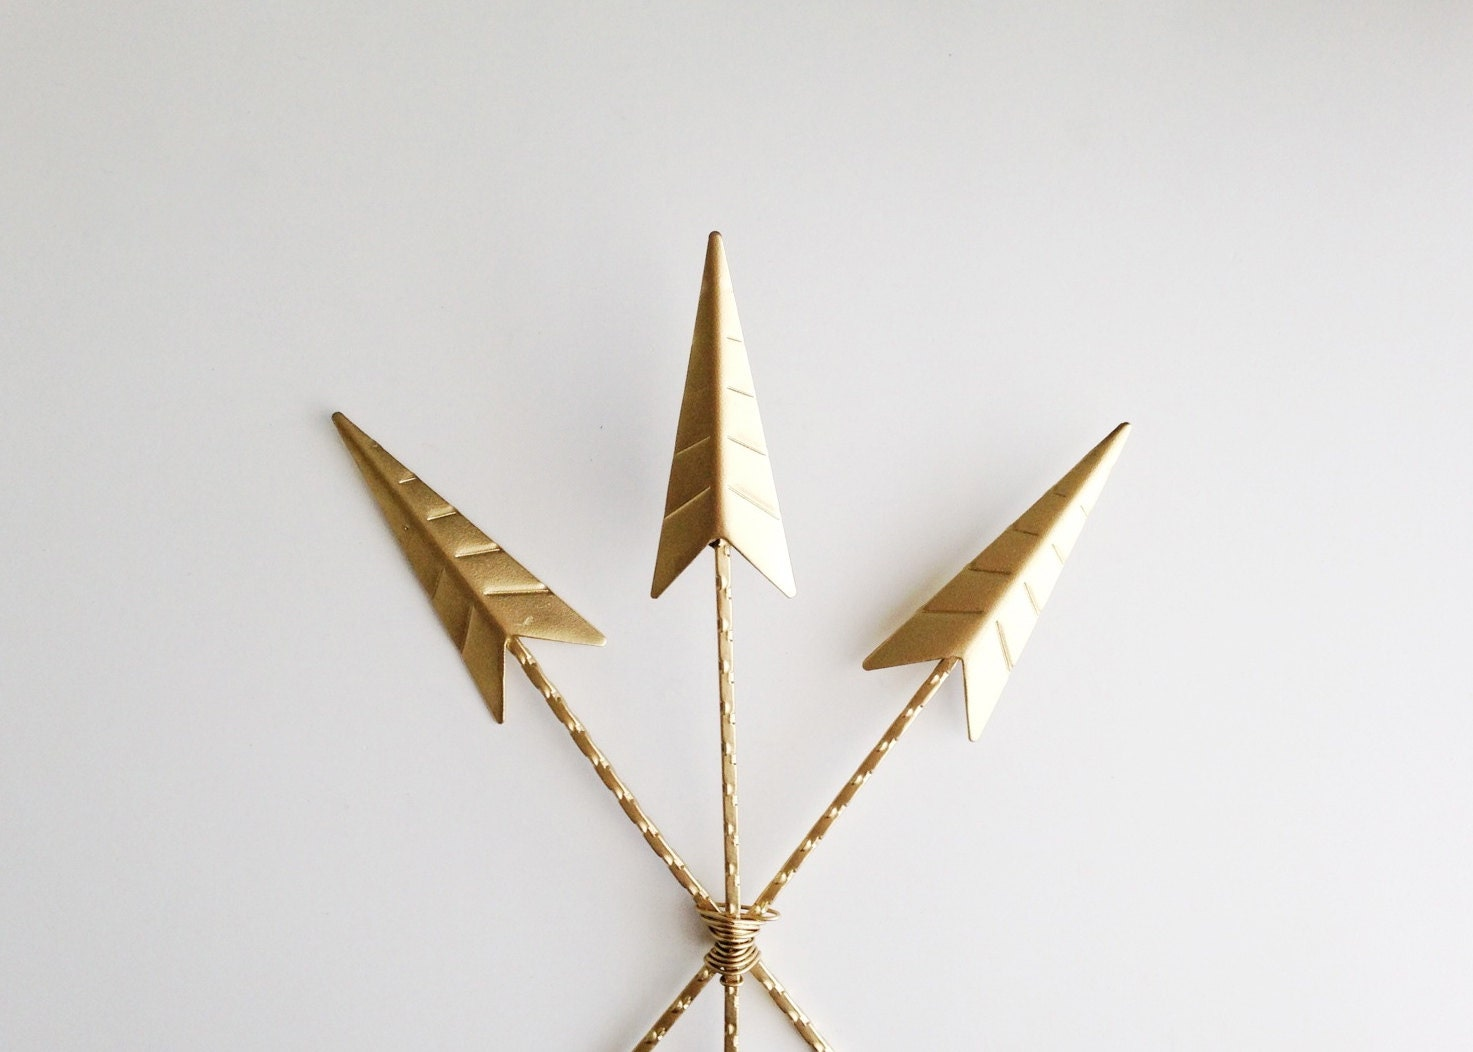 Gold Arrow Wall Decor : Arrows wall decor gold arrow art painted by